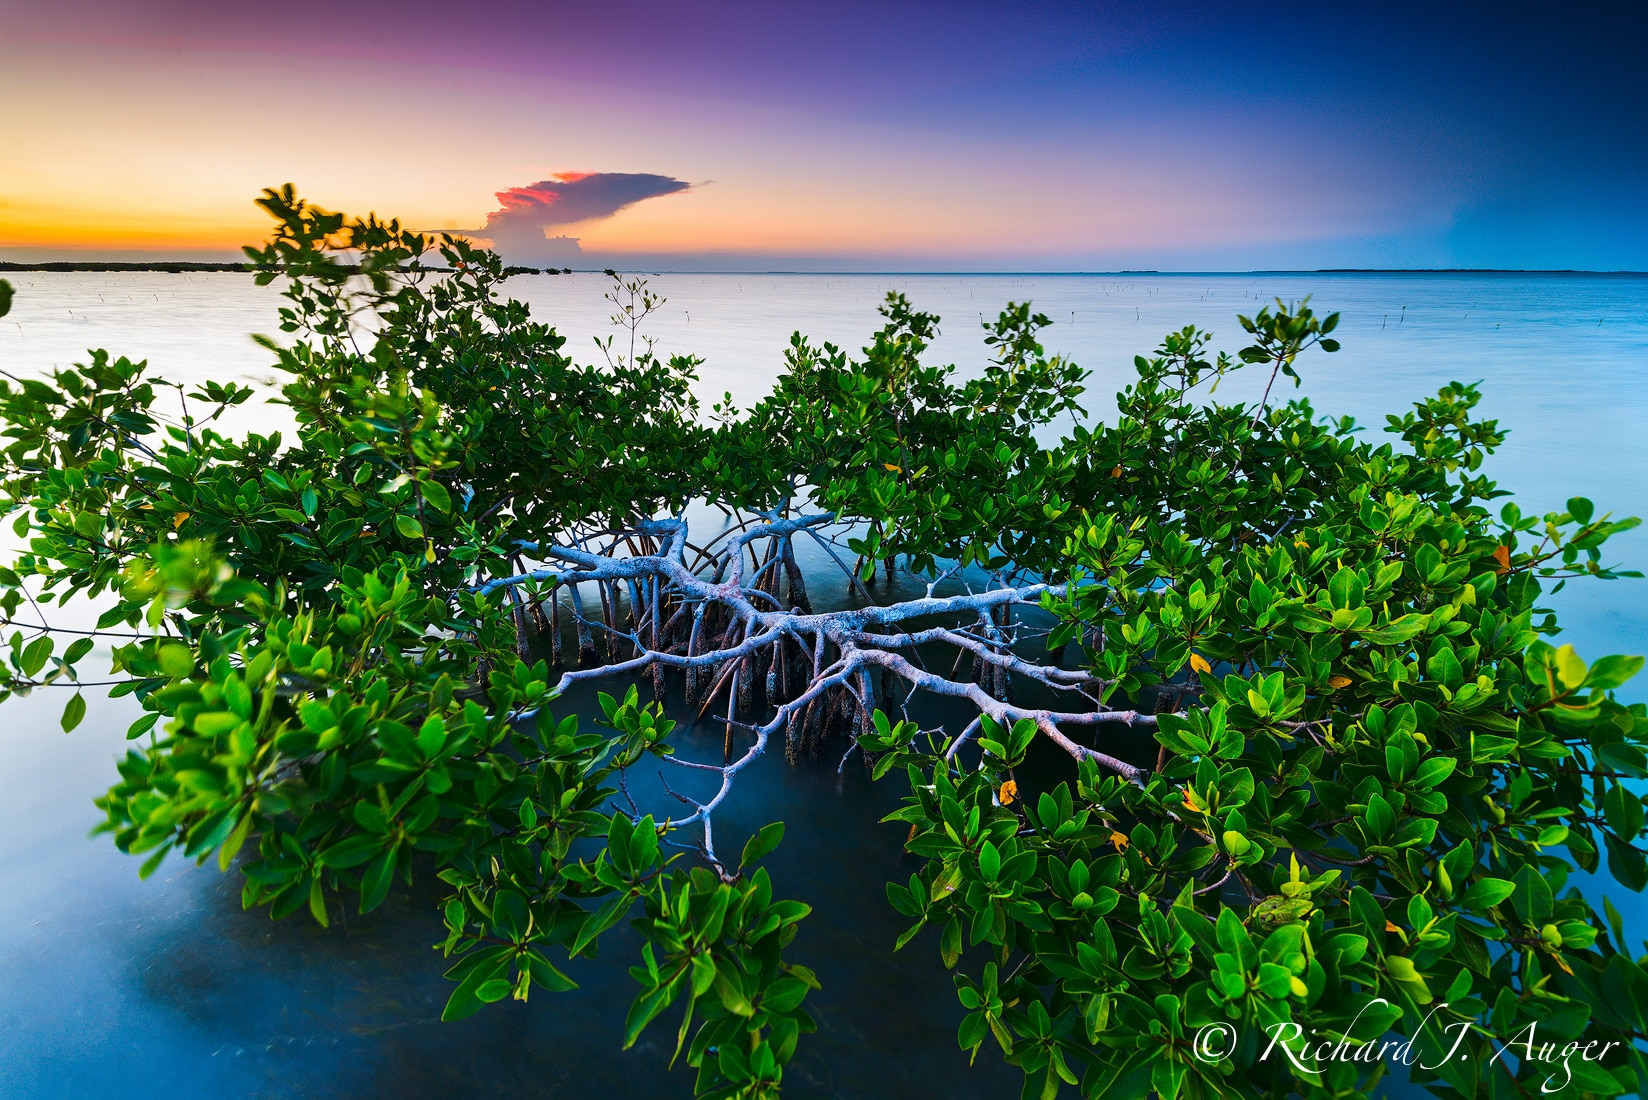 Mangrove, Florida Bay, Florida Keys, Sunset, Nature, Ocean, Calm